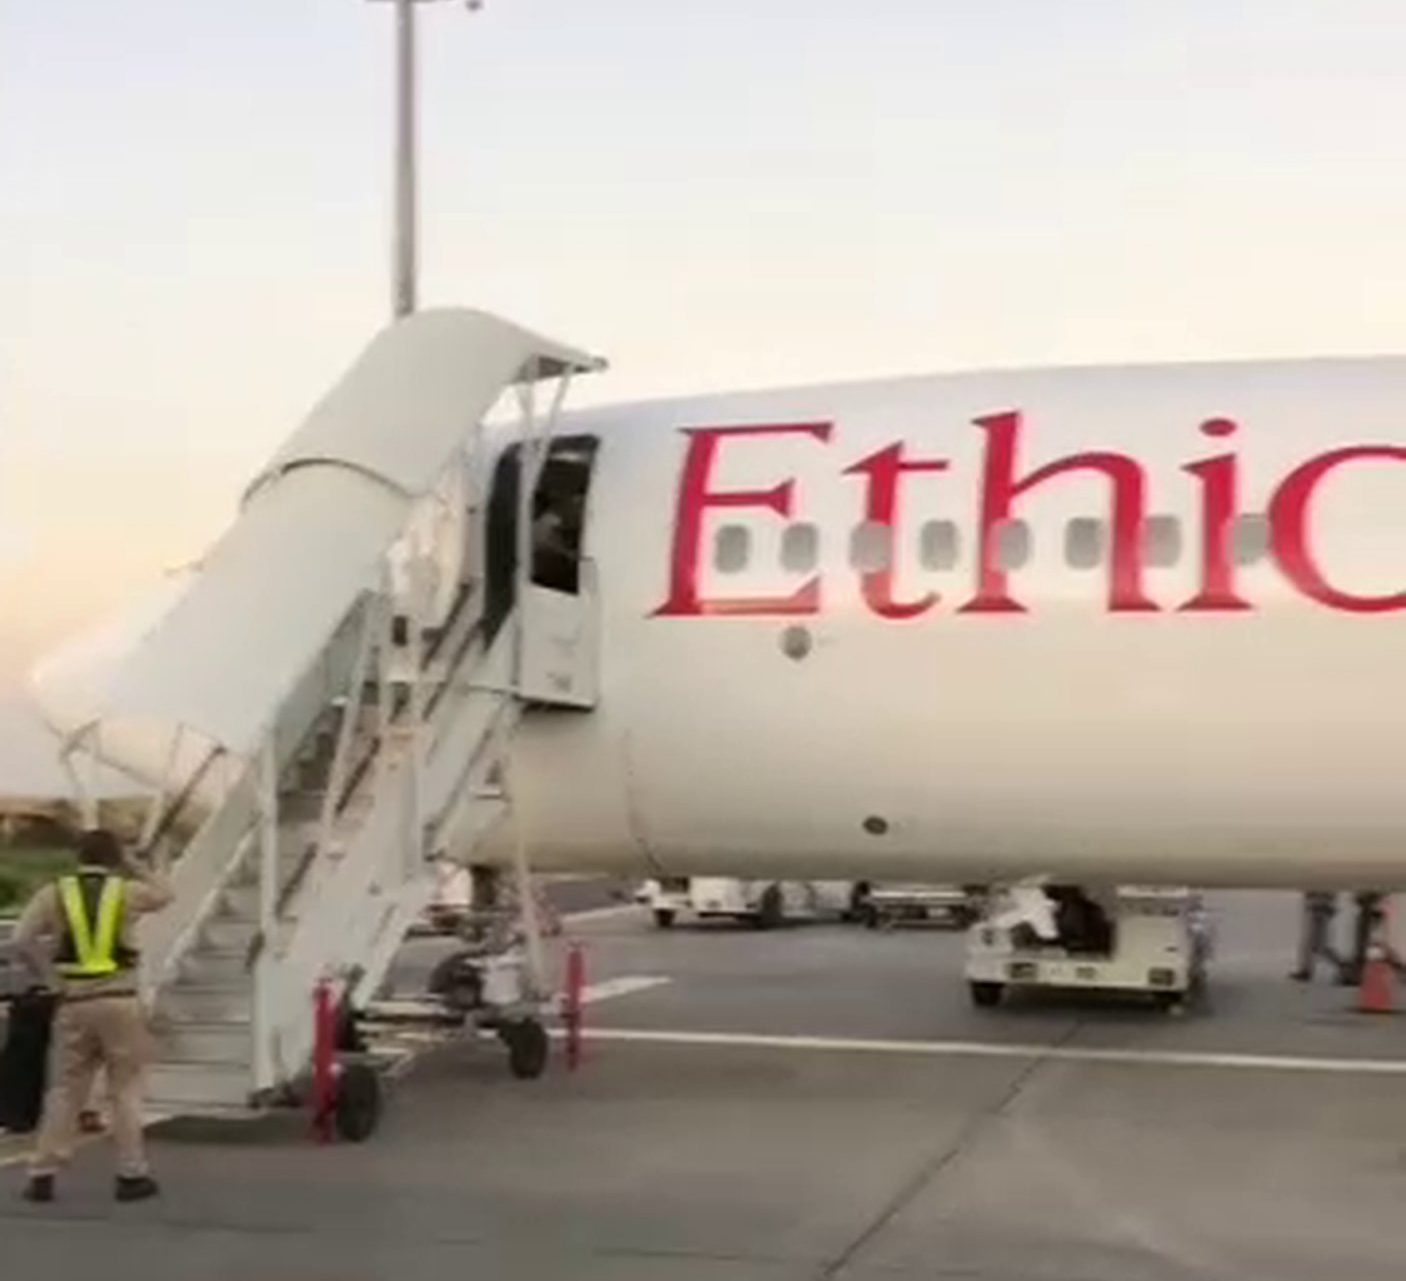 Last footage of the Ethiopian Airlines plane